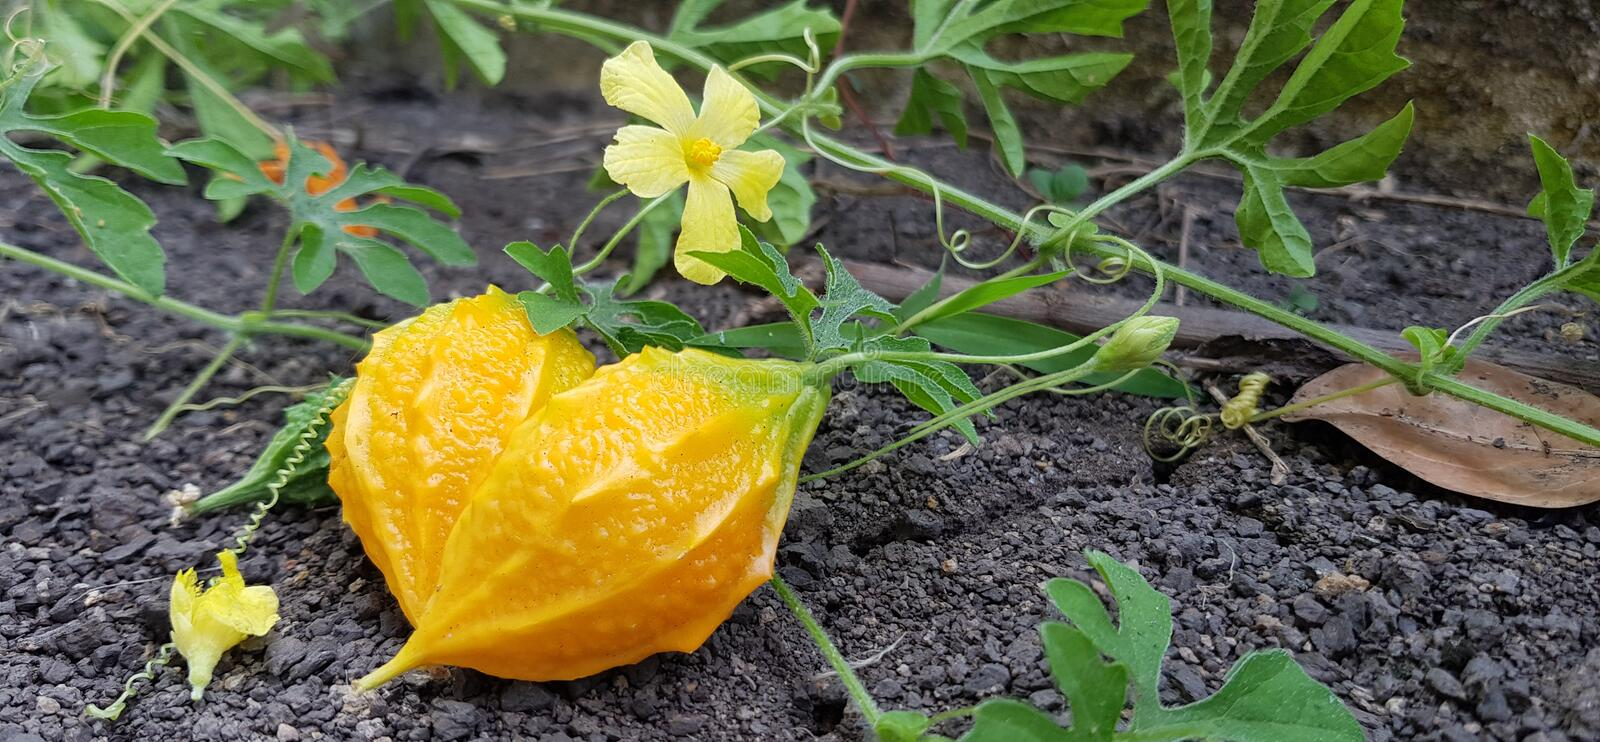 Bitter gourd grows on the ground.Bitter gourd and blooming flowers,Fresh bitter gourd for cooking stock photography